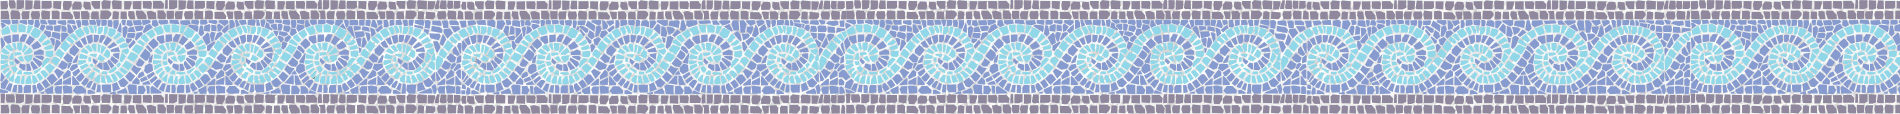 Wave Tile Mosaic Border